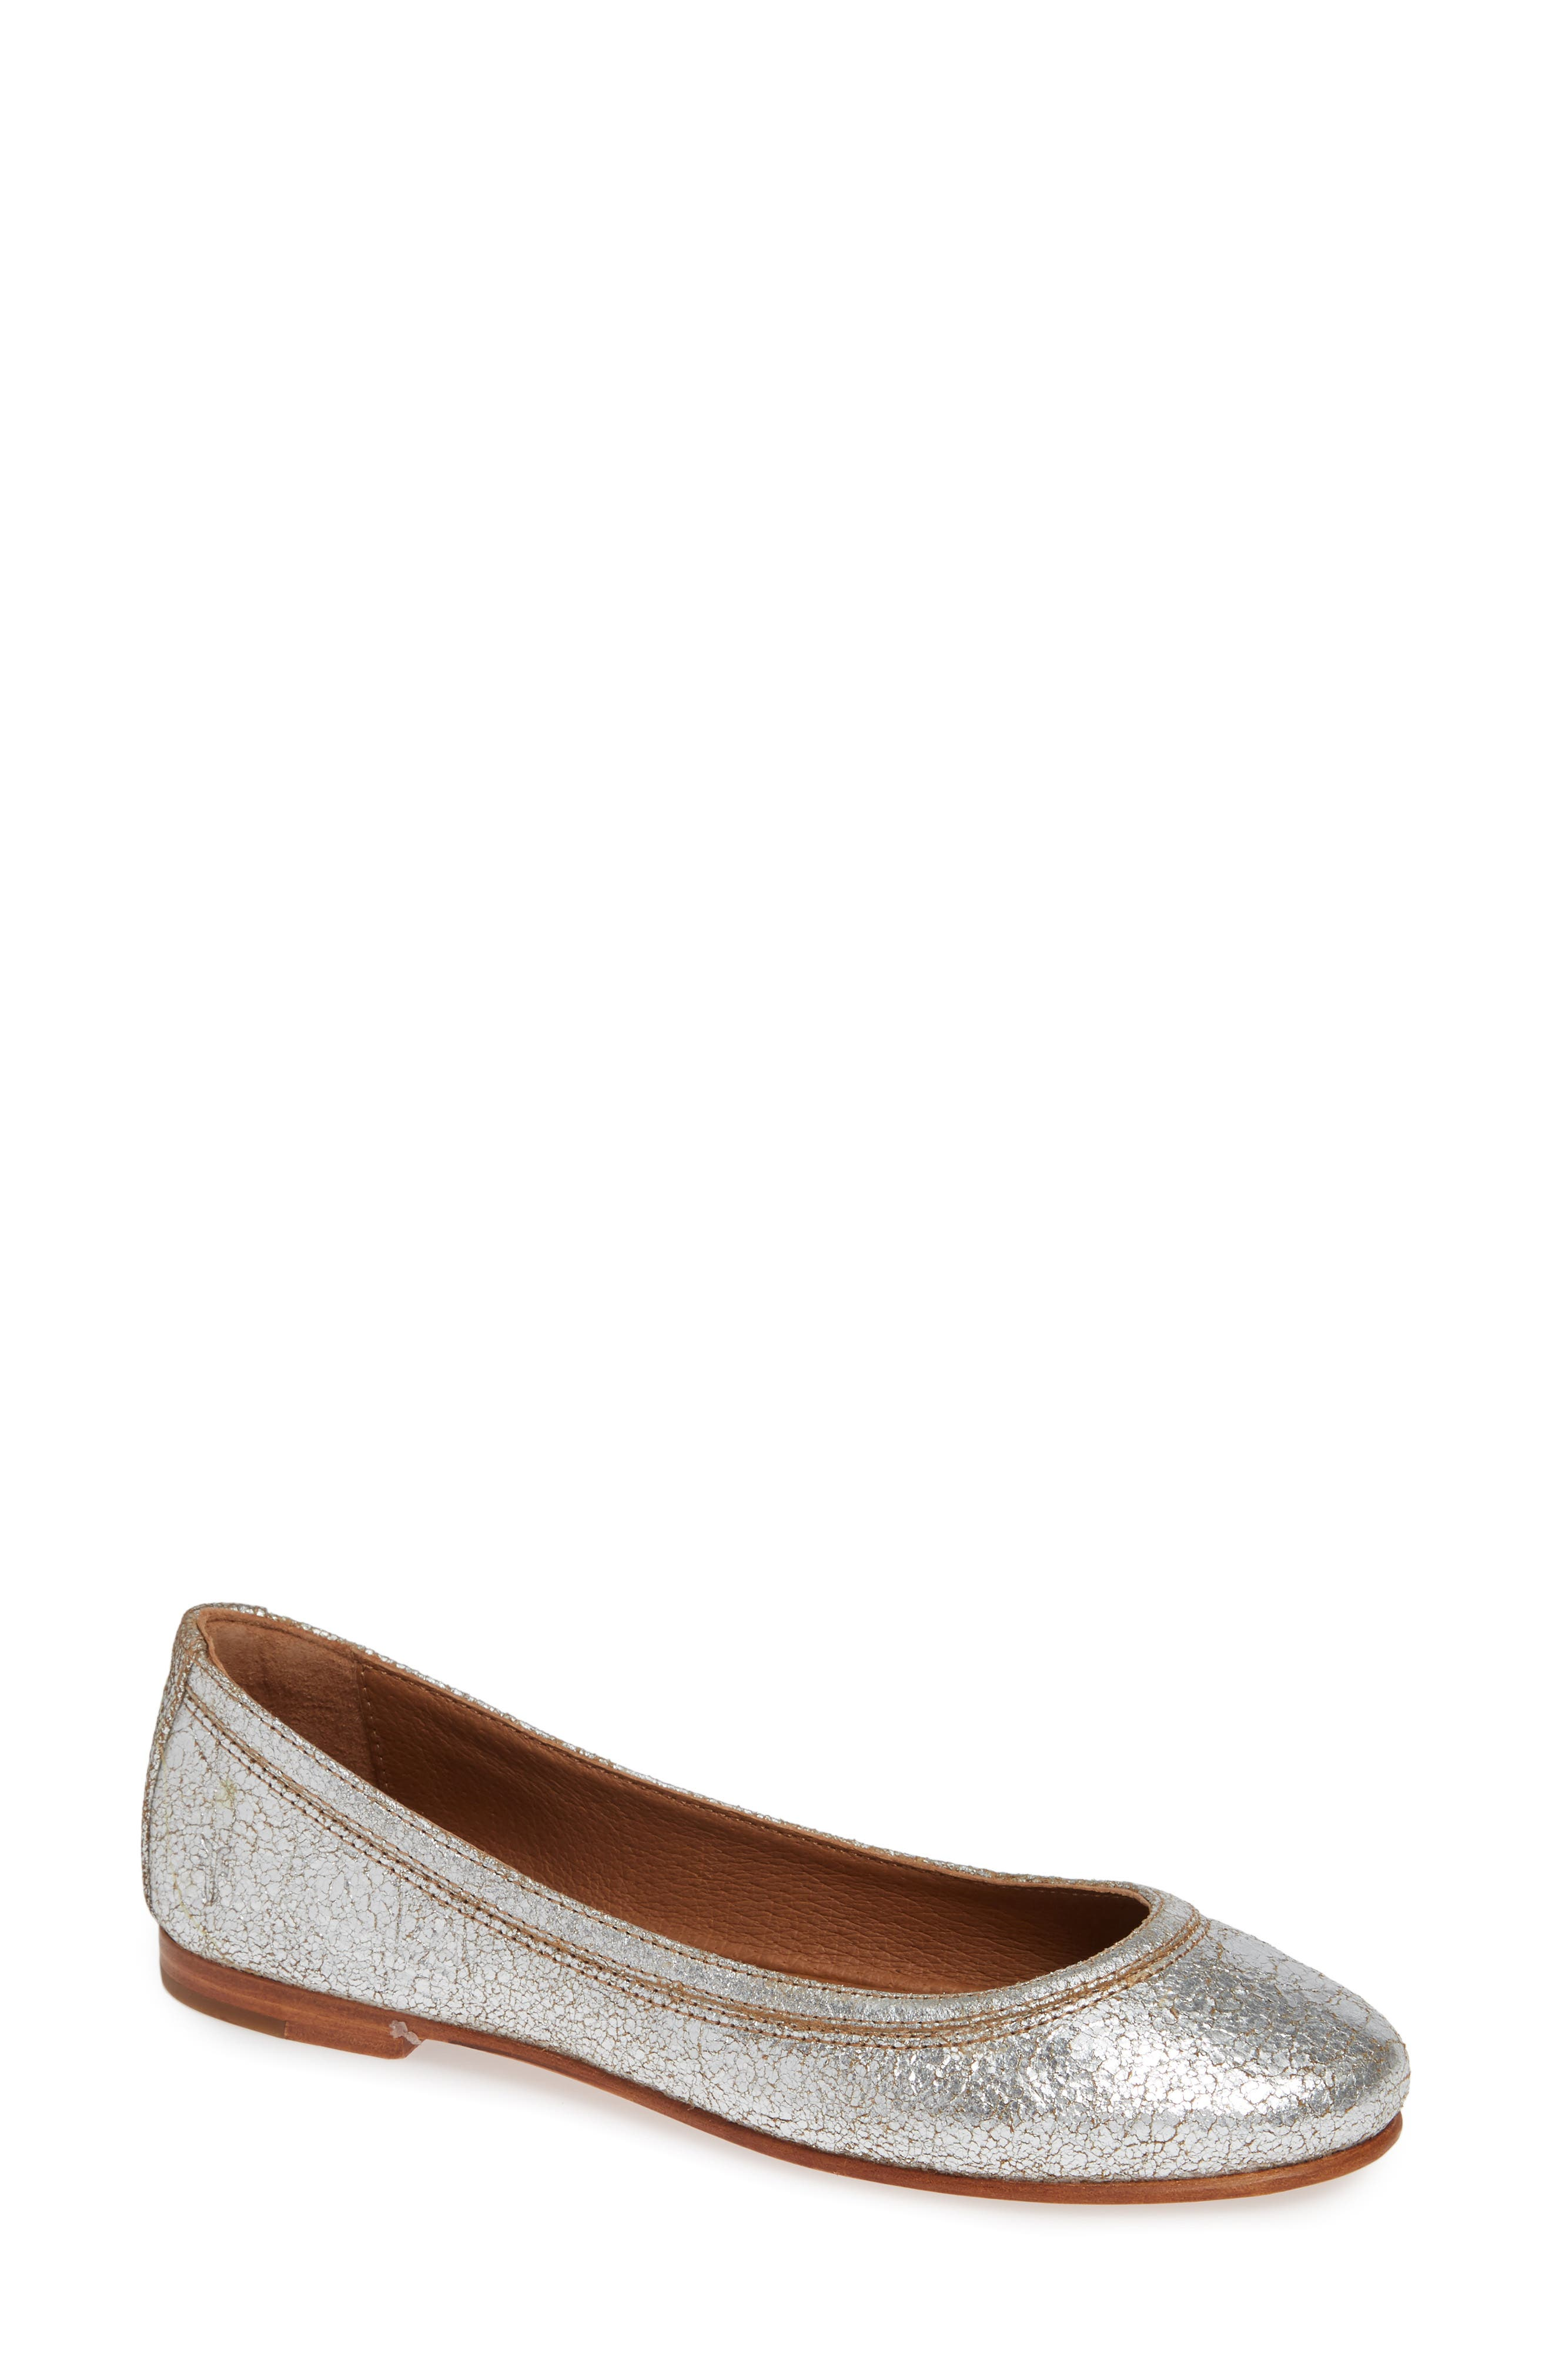 'Carson' Ballet Flat,                         Main,                         color, SILVER LEATHER